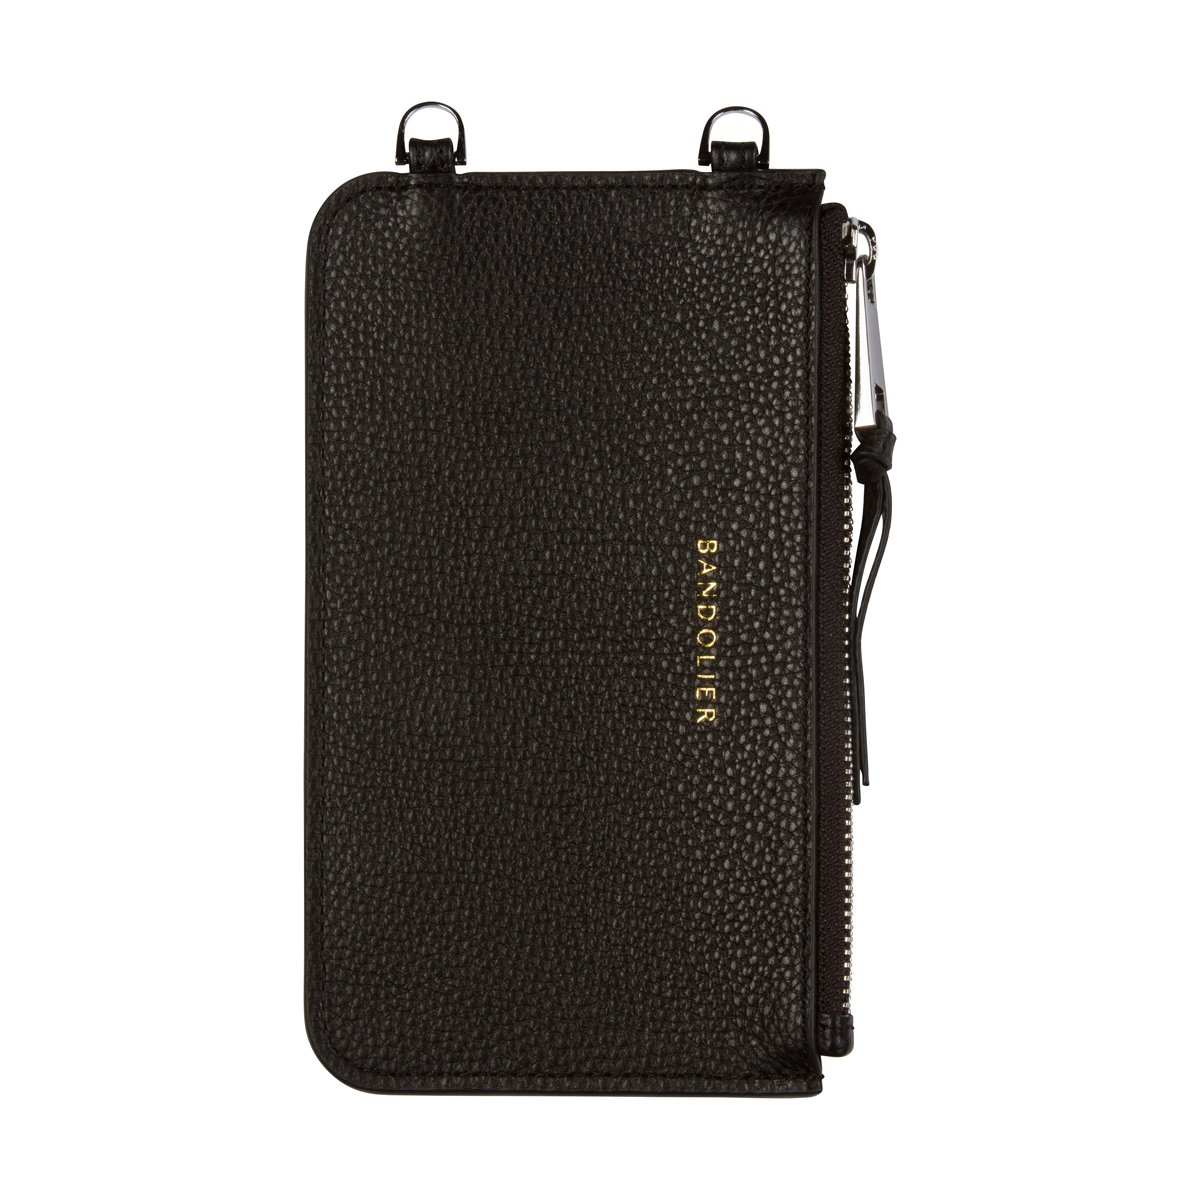 Bandolier [Emma] Leather Zip Pouch - Black Pebble Leather with Silver Detail - Compatible with All Bandolier Phone Cases